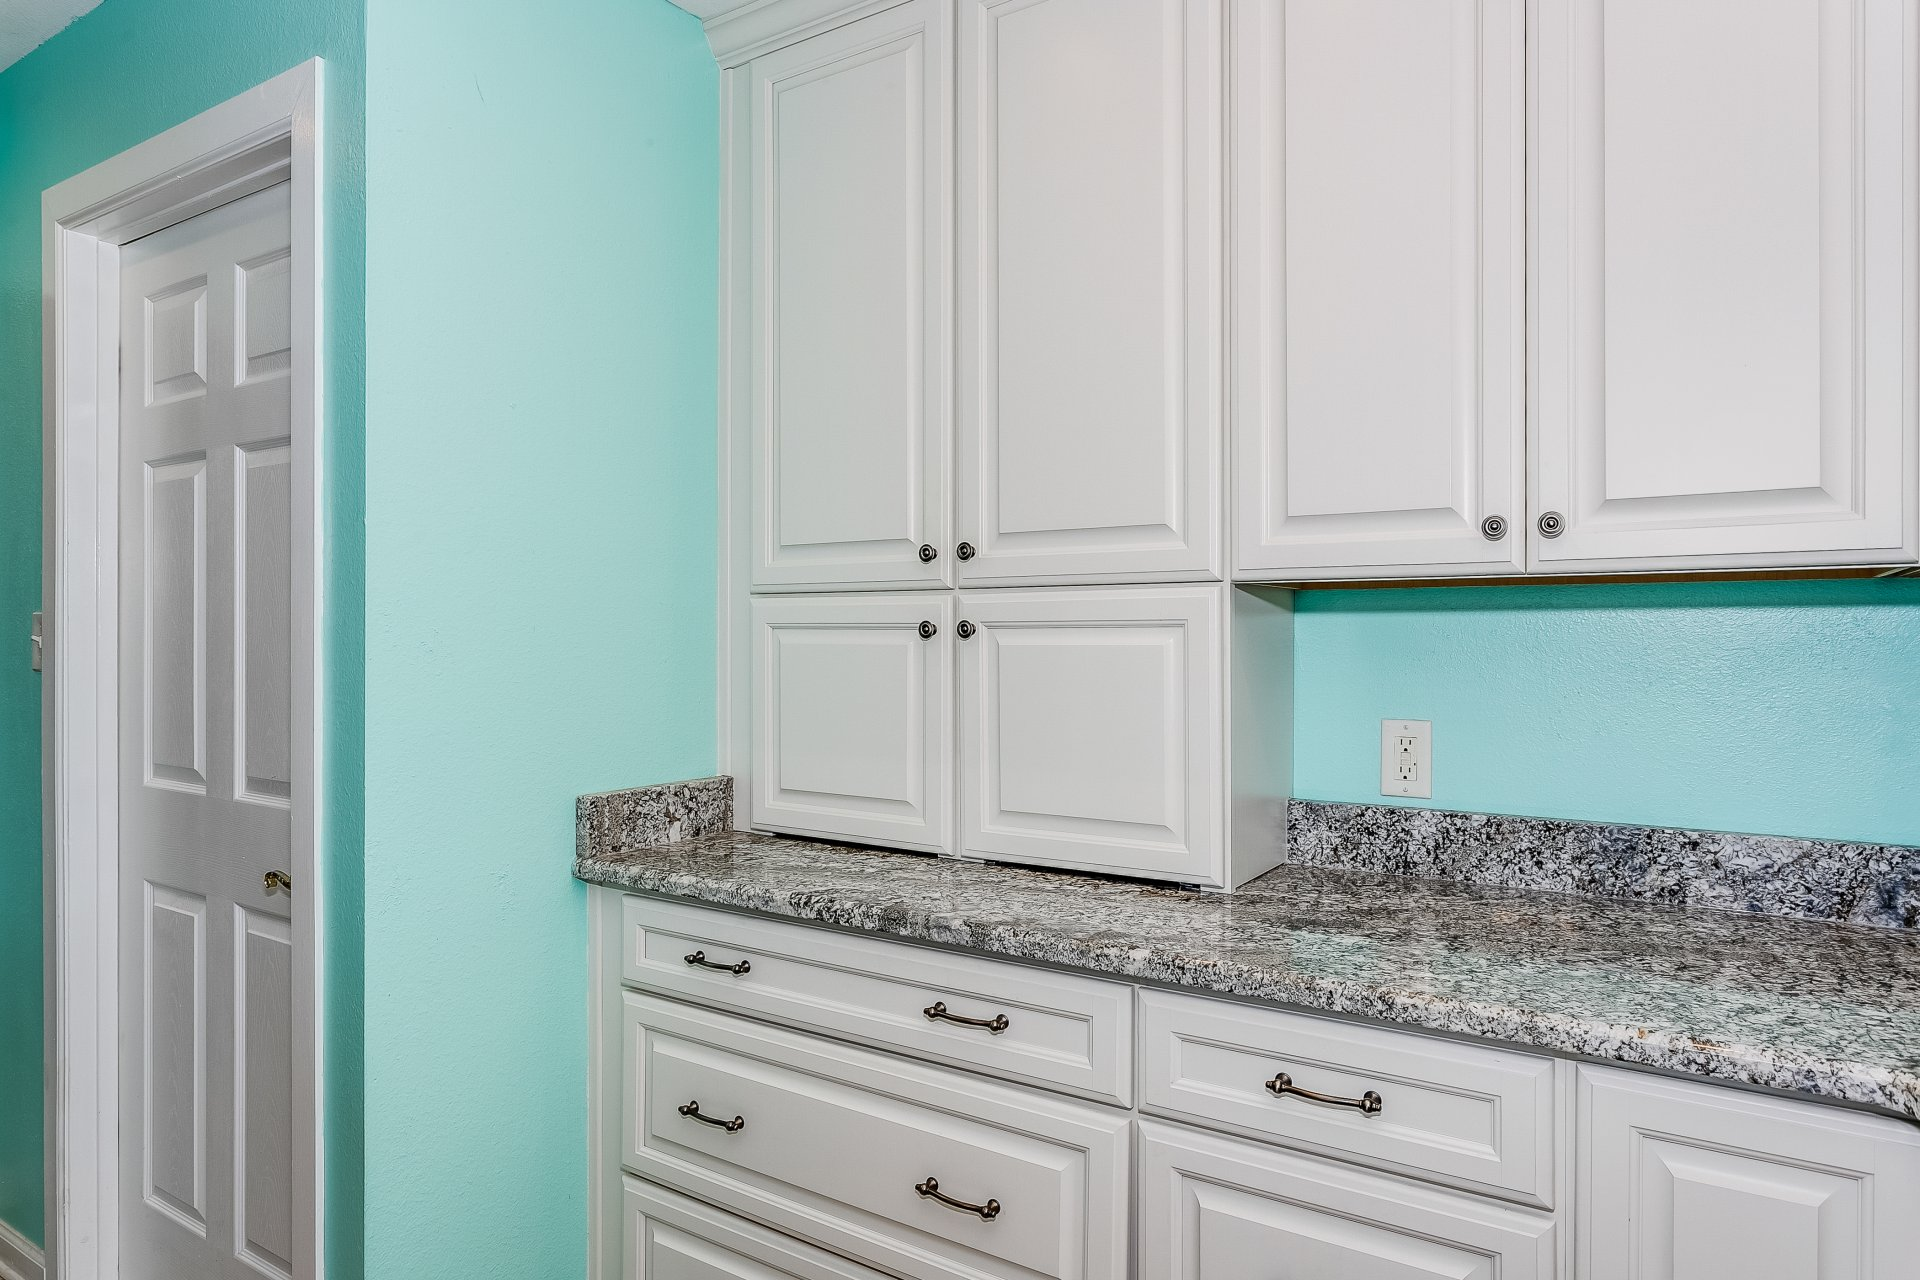 Closed small appliance storage keeps kitchen neat